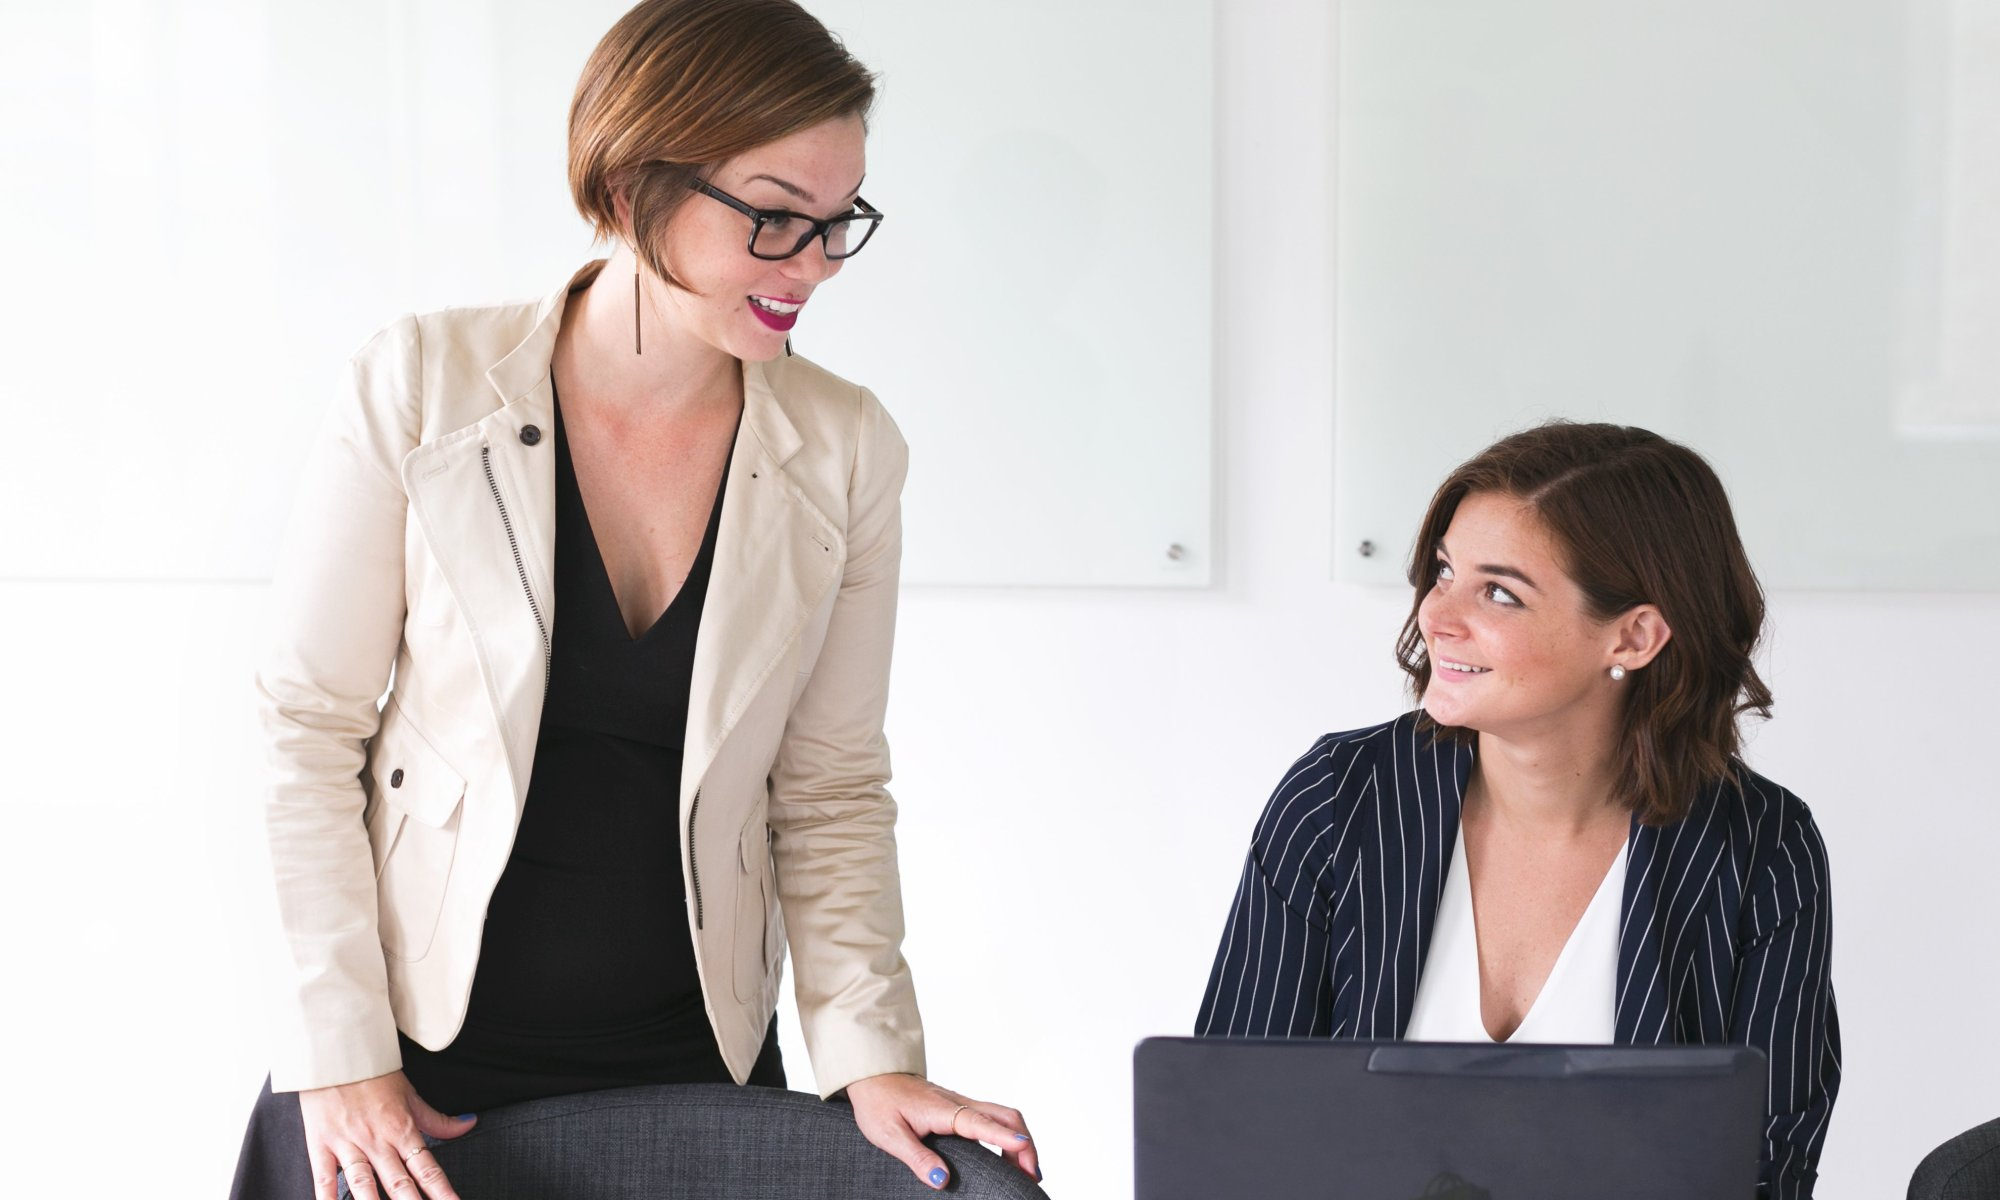 Businesswomen talking and smiling in front of laptop